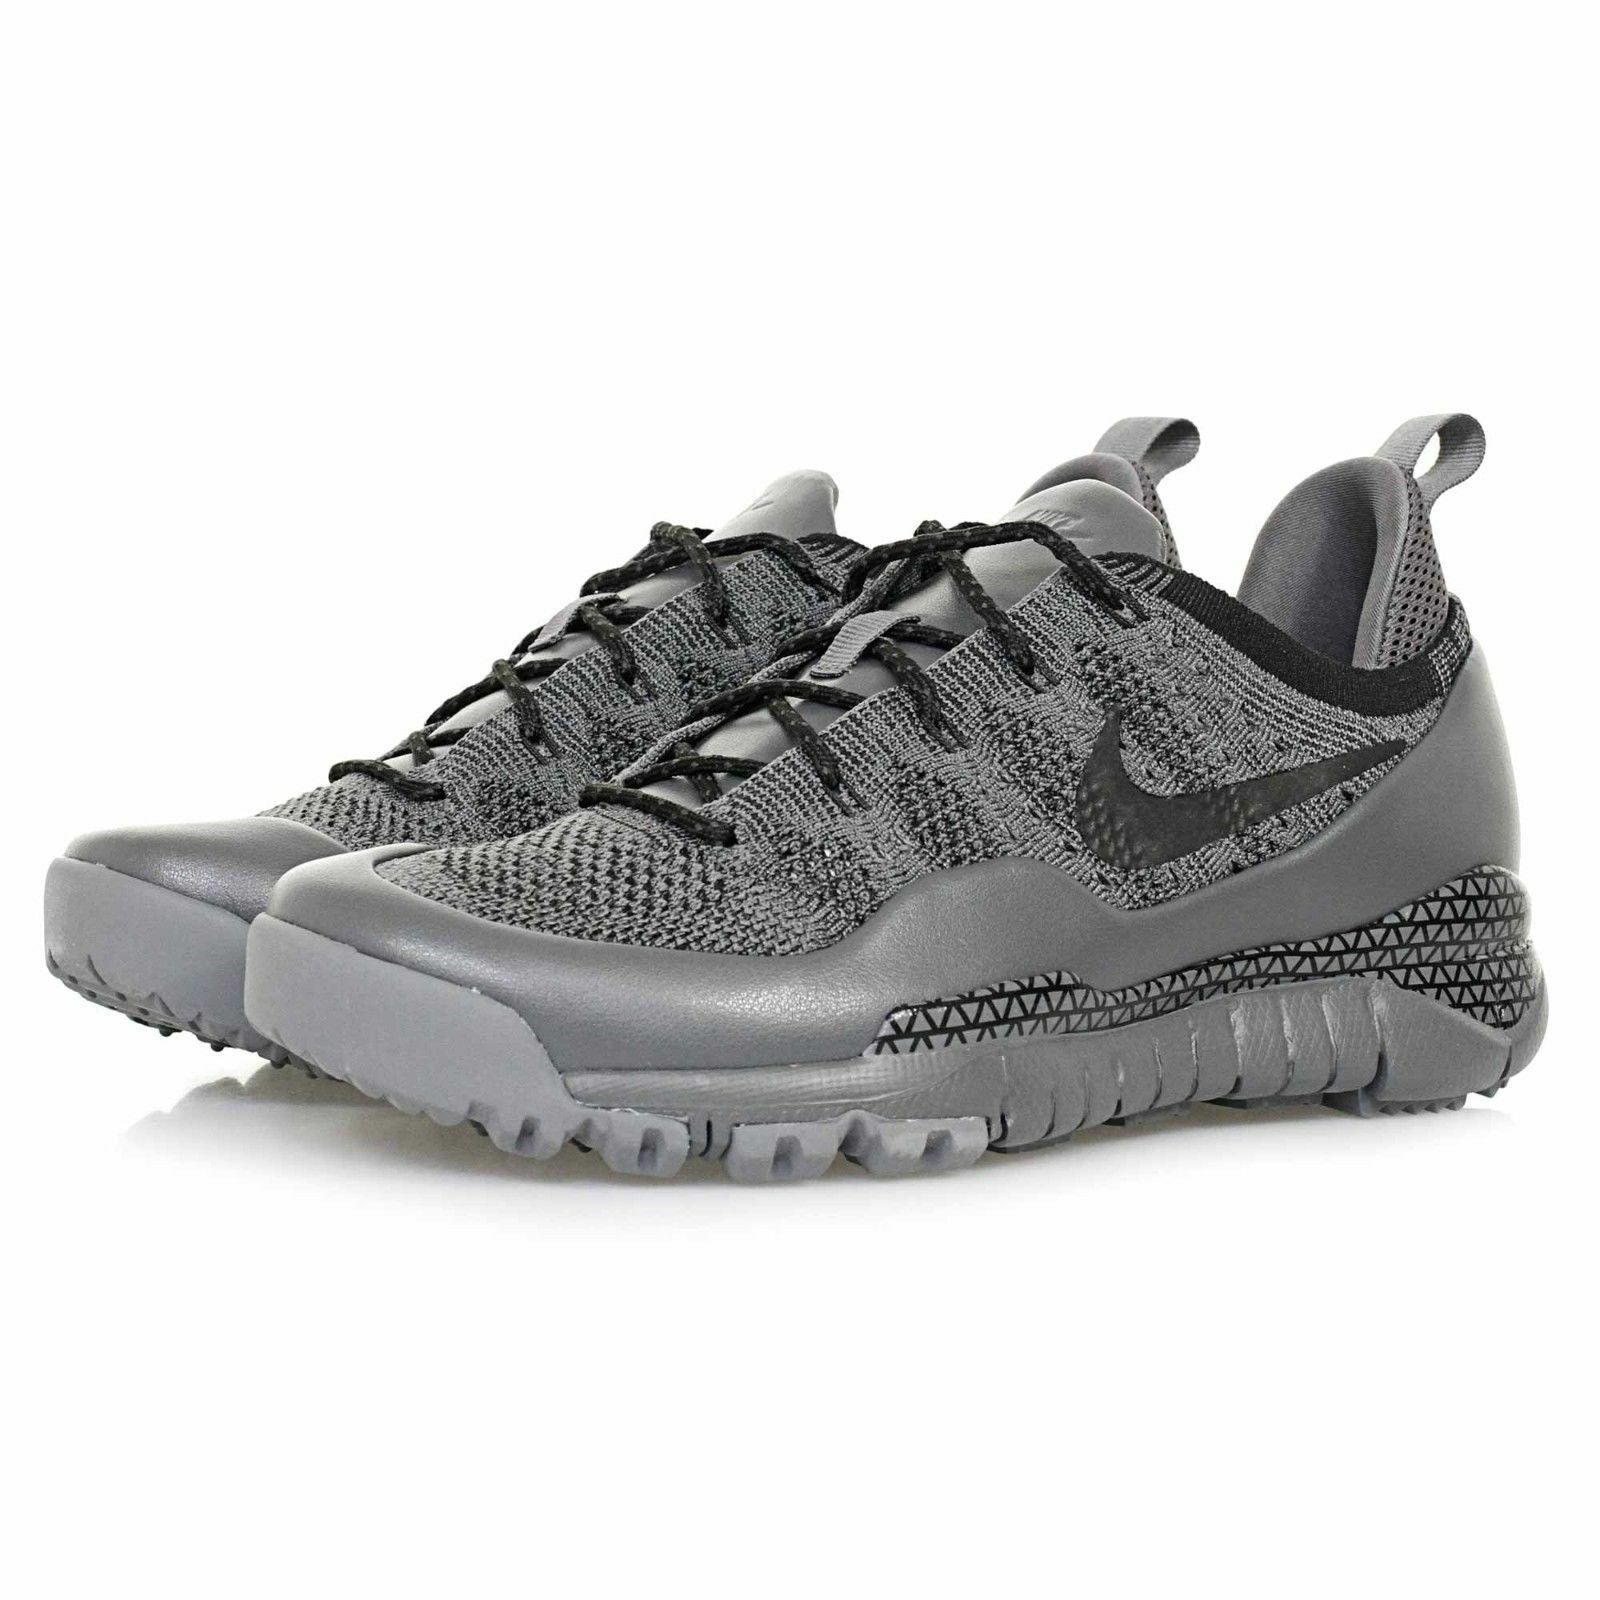 NIKE LUPINEK Casual FLYKNIT LOW Trainers Shoes Casual LUPINEK Water Repellent - Various Sizes 1fa794